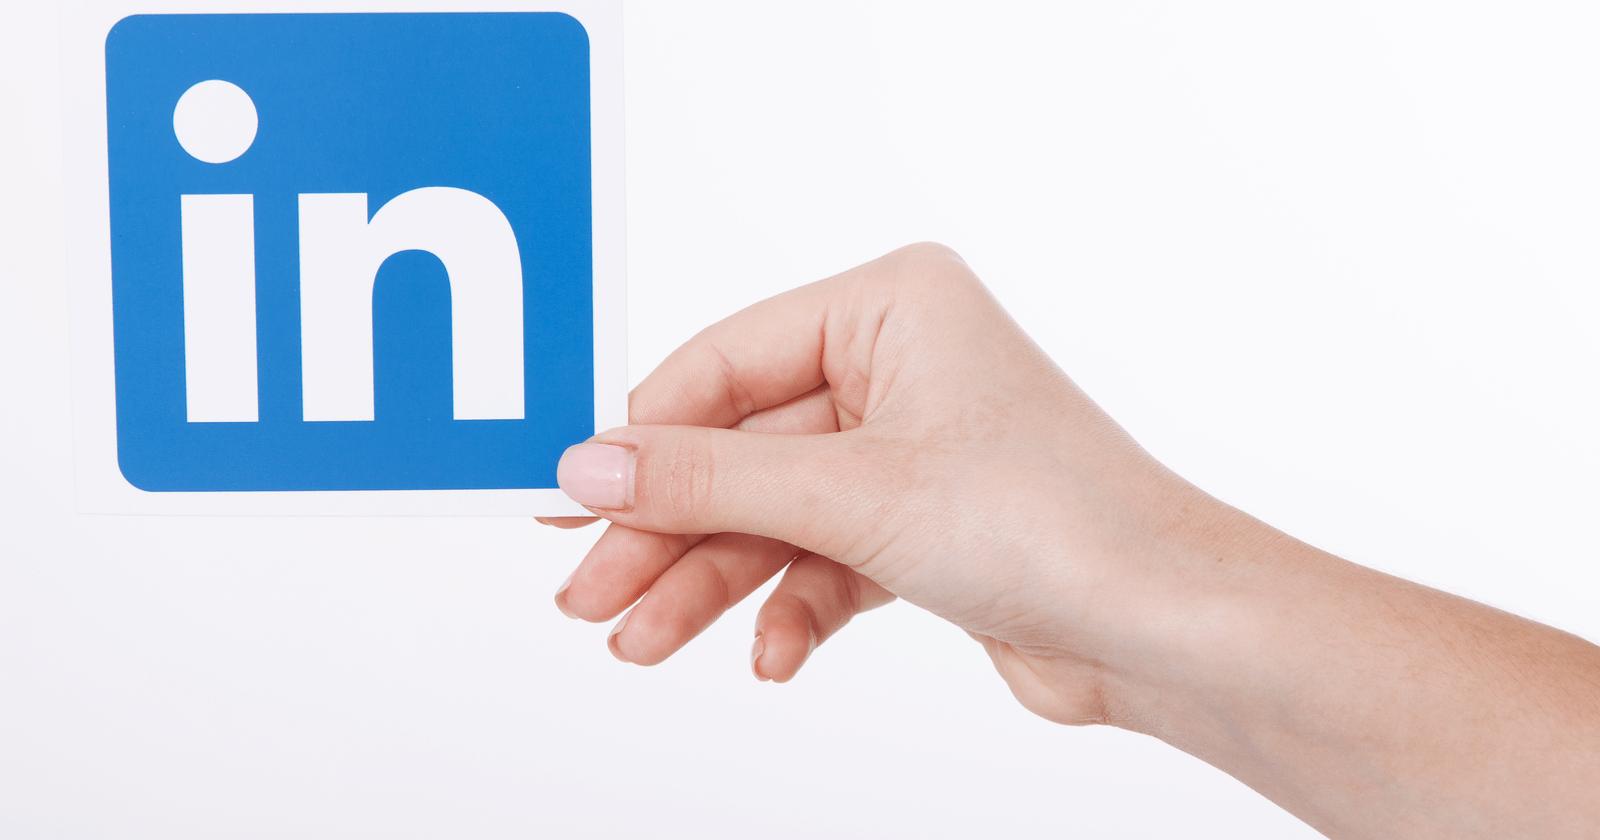 5 Ways to Drive More Qualified Leads With LinkedIn Sales Navigator by @Jasmine_Sandler